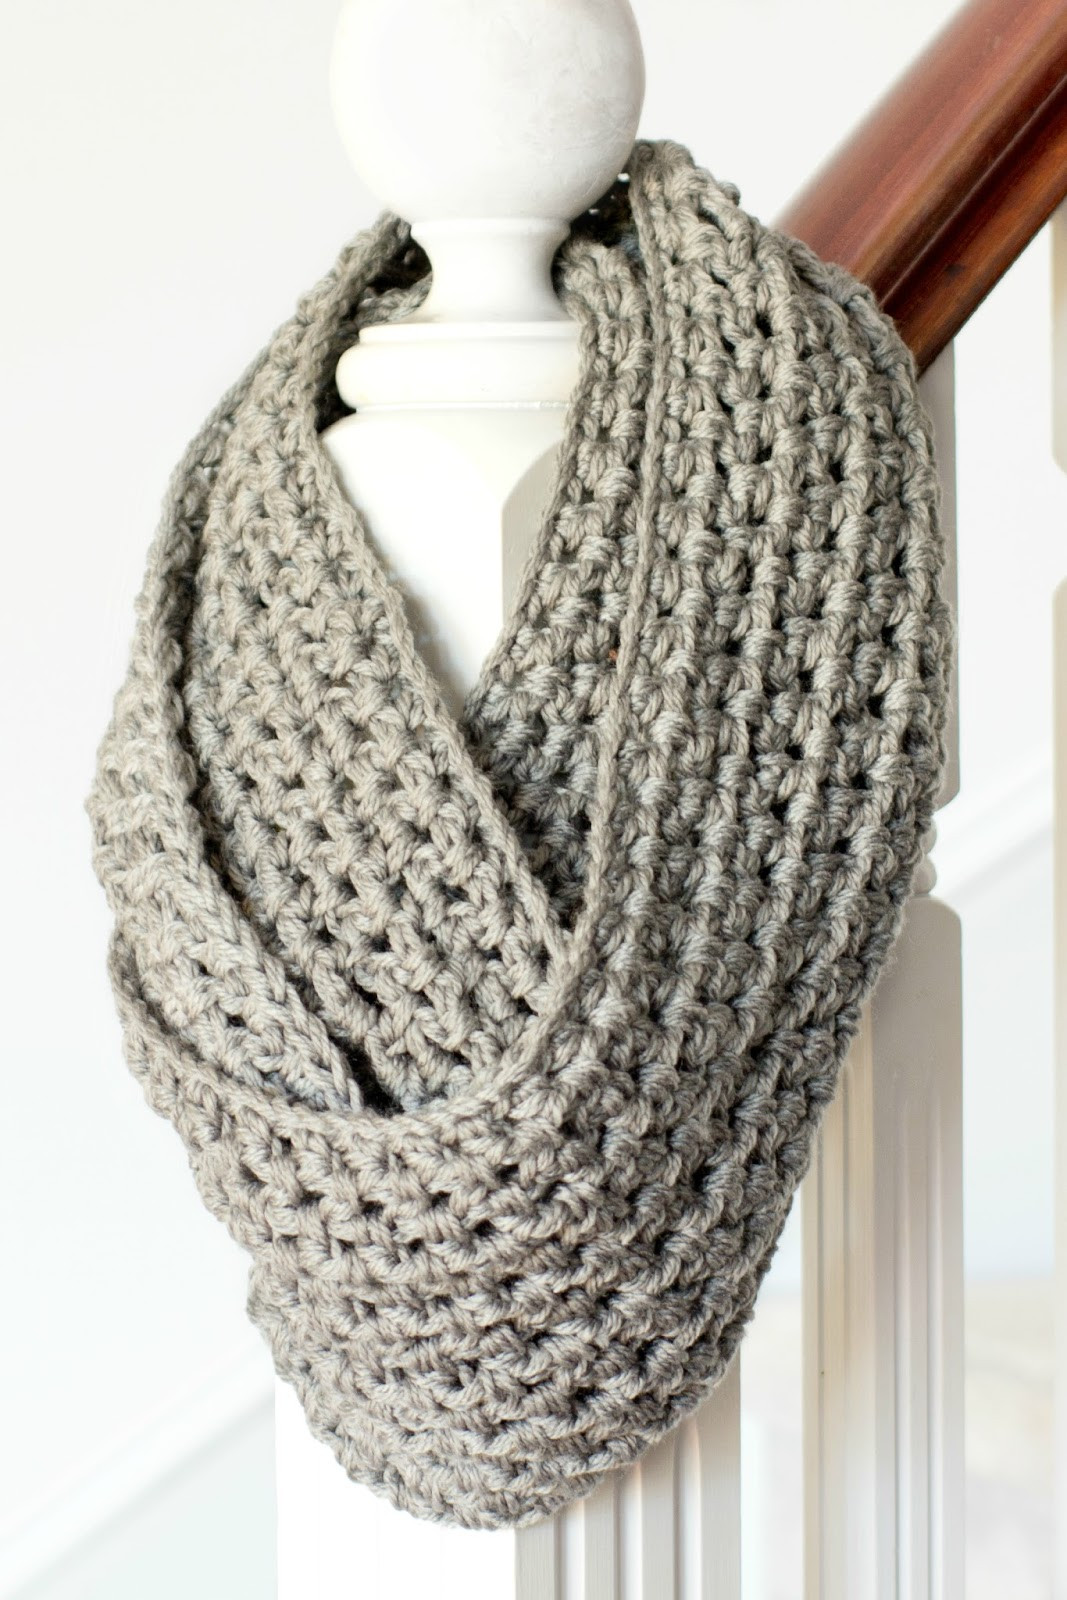 Elegant 42 Fun and Cozy Diy Scarves Crafts to Make Infinity Cowl Crochet Pattern Of New 32 Super Easy Crochet Infinity Scarf Ideas Infinity Cowl Crochet Pattern